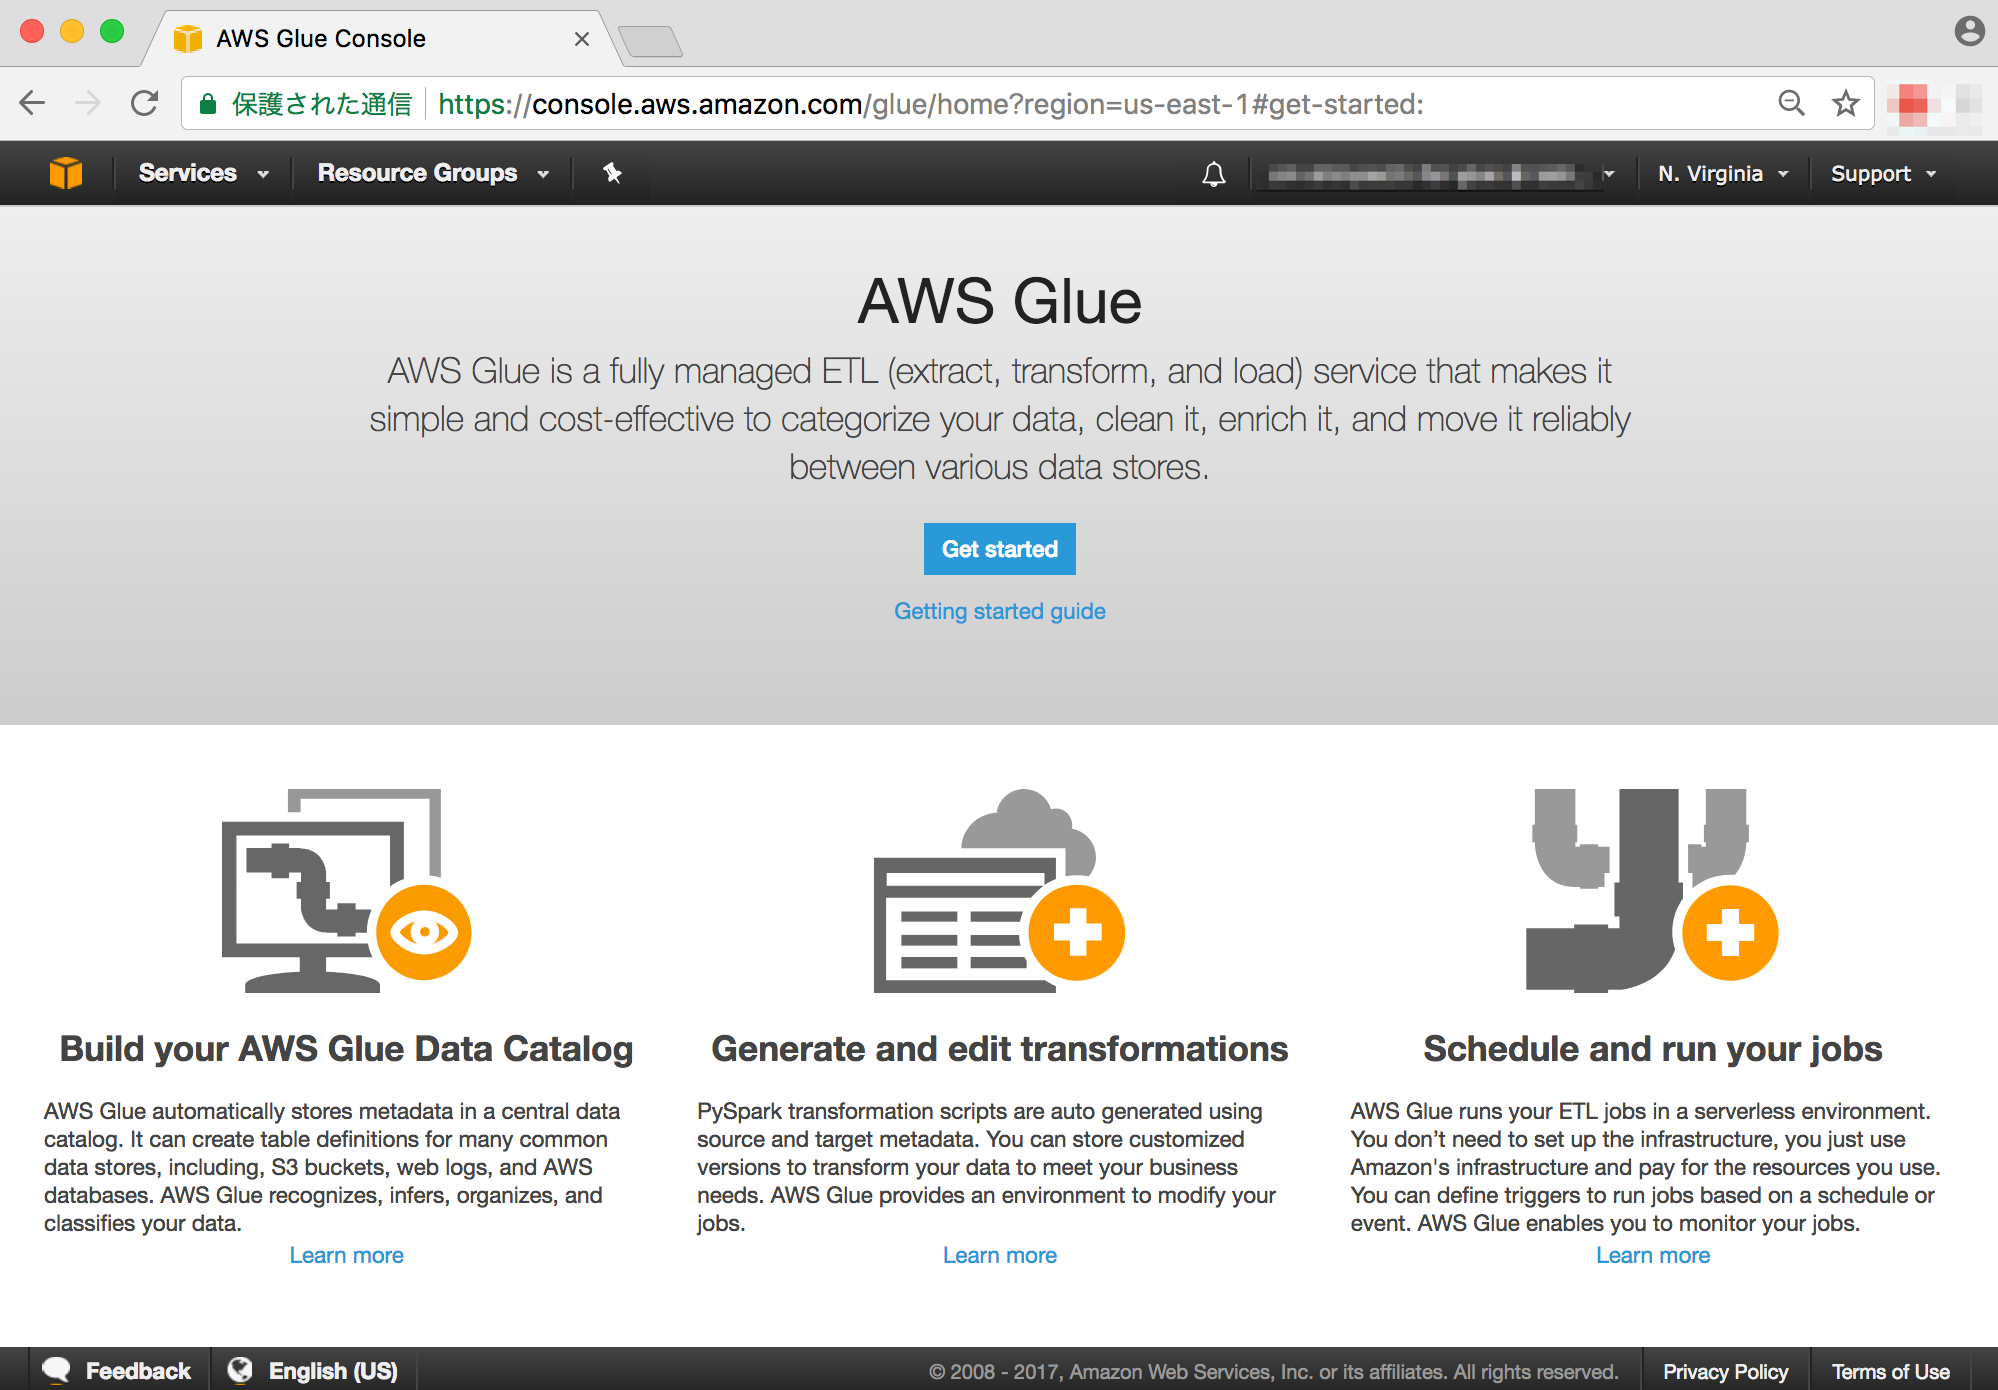 aws-glue-console-get-started